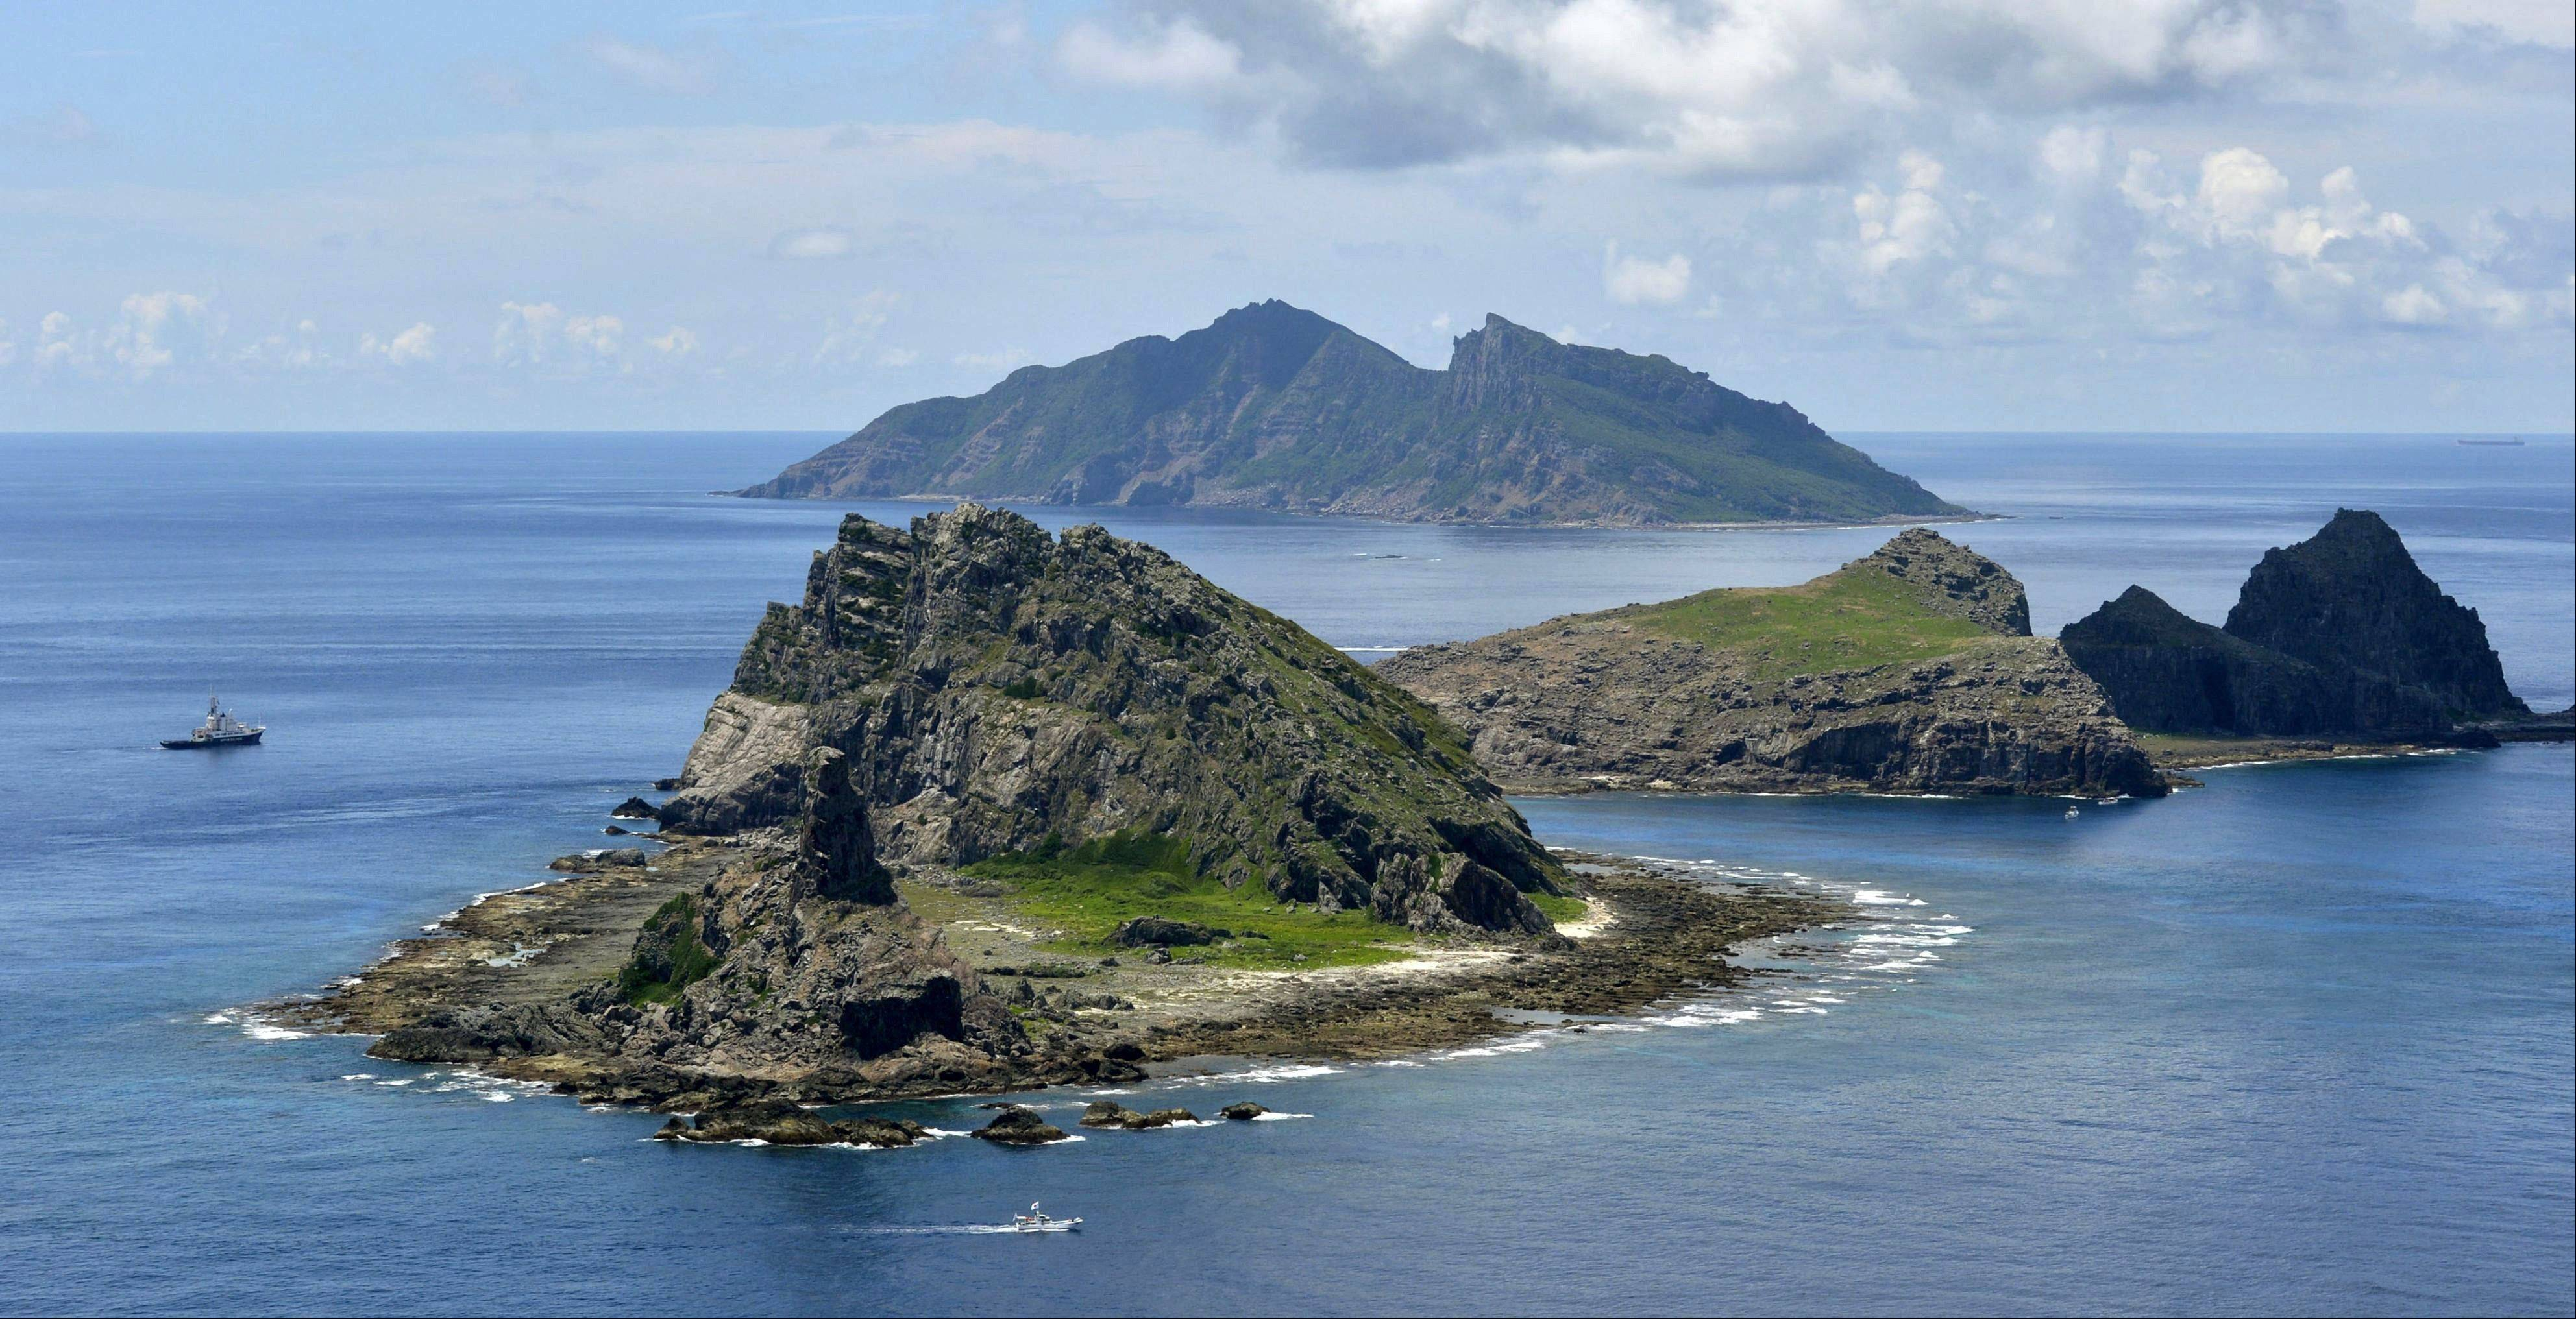 Japan's government says it has decided to purchase several disputed islands from their private owners in a step that is likely to anger China.